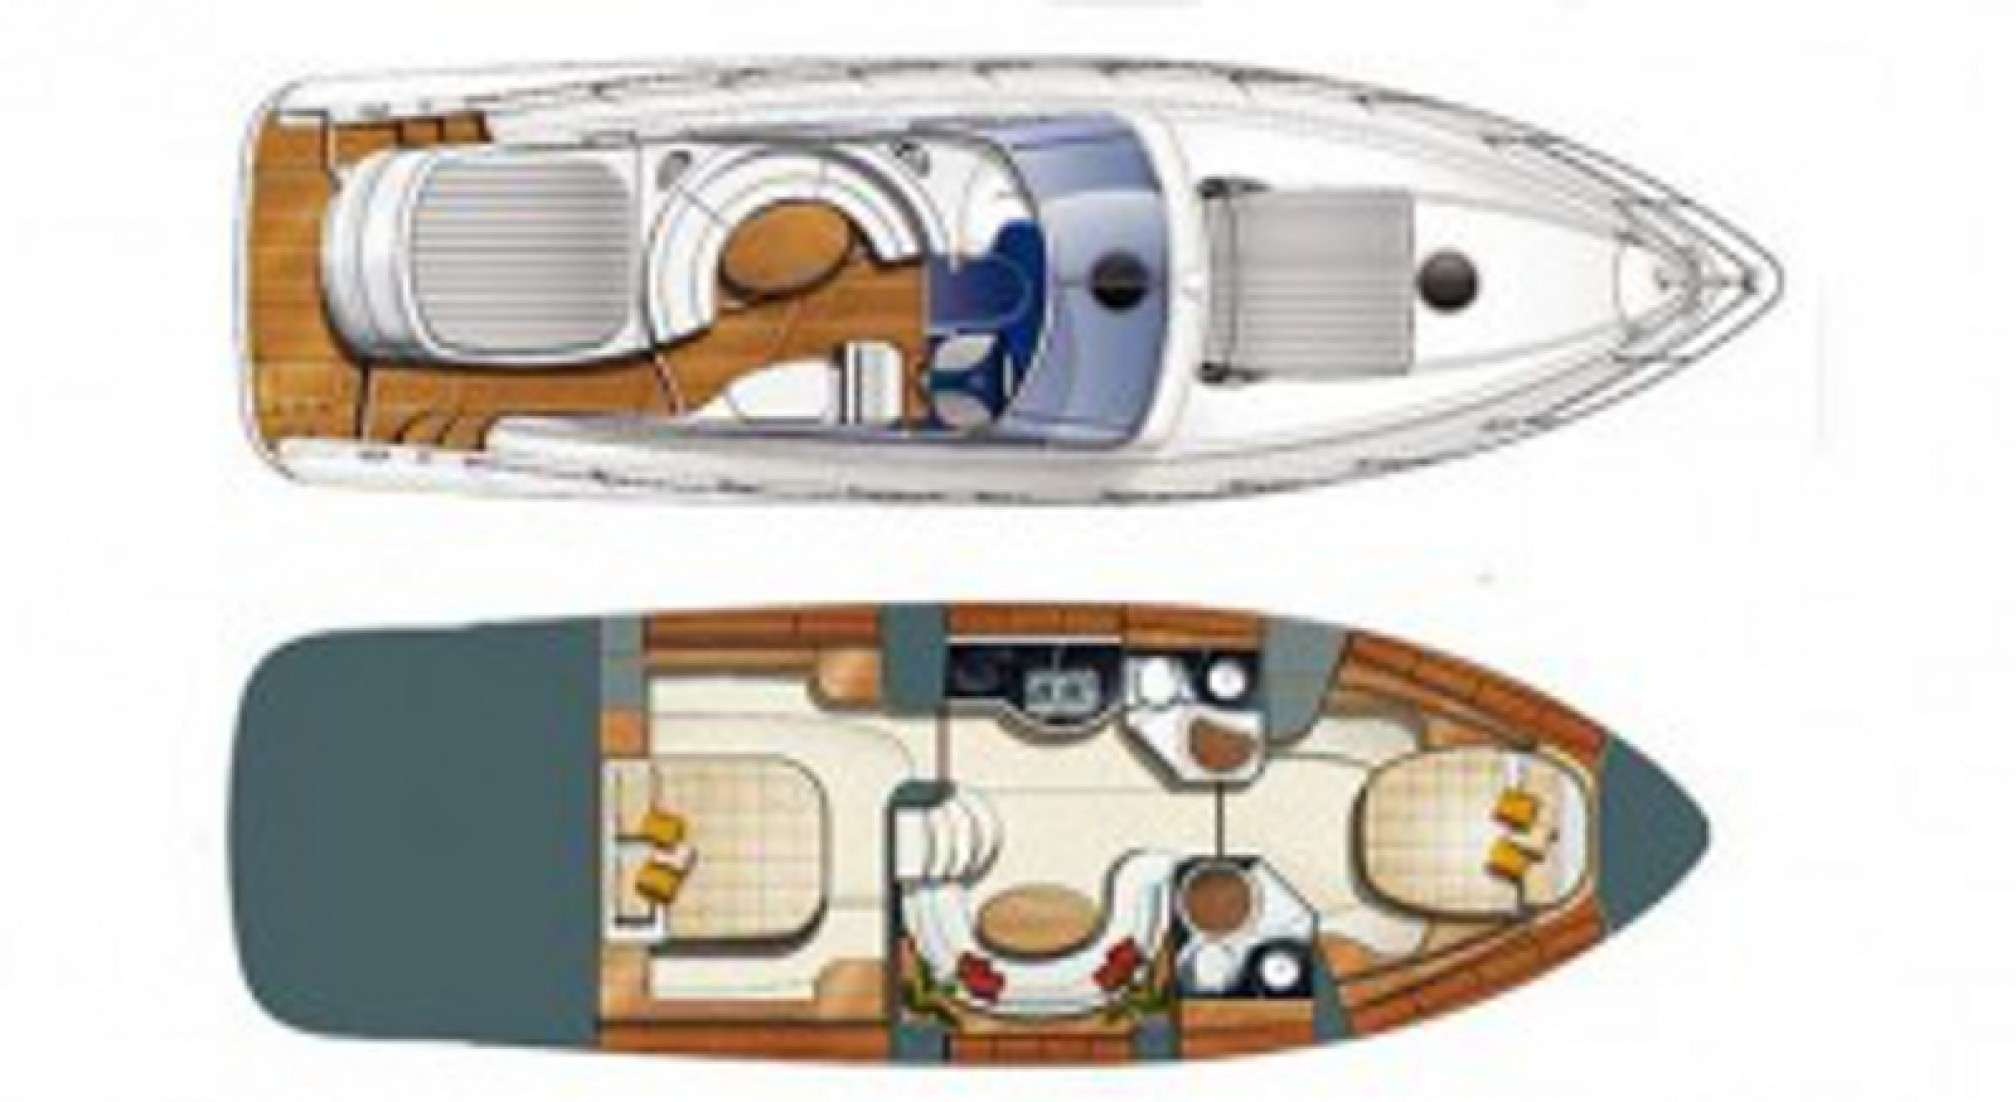 Gobbi Atlantis 47 charter motorboat layout